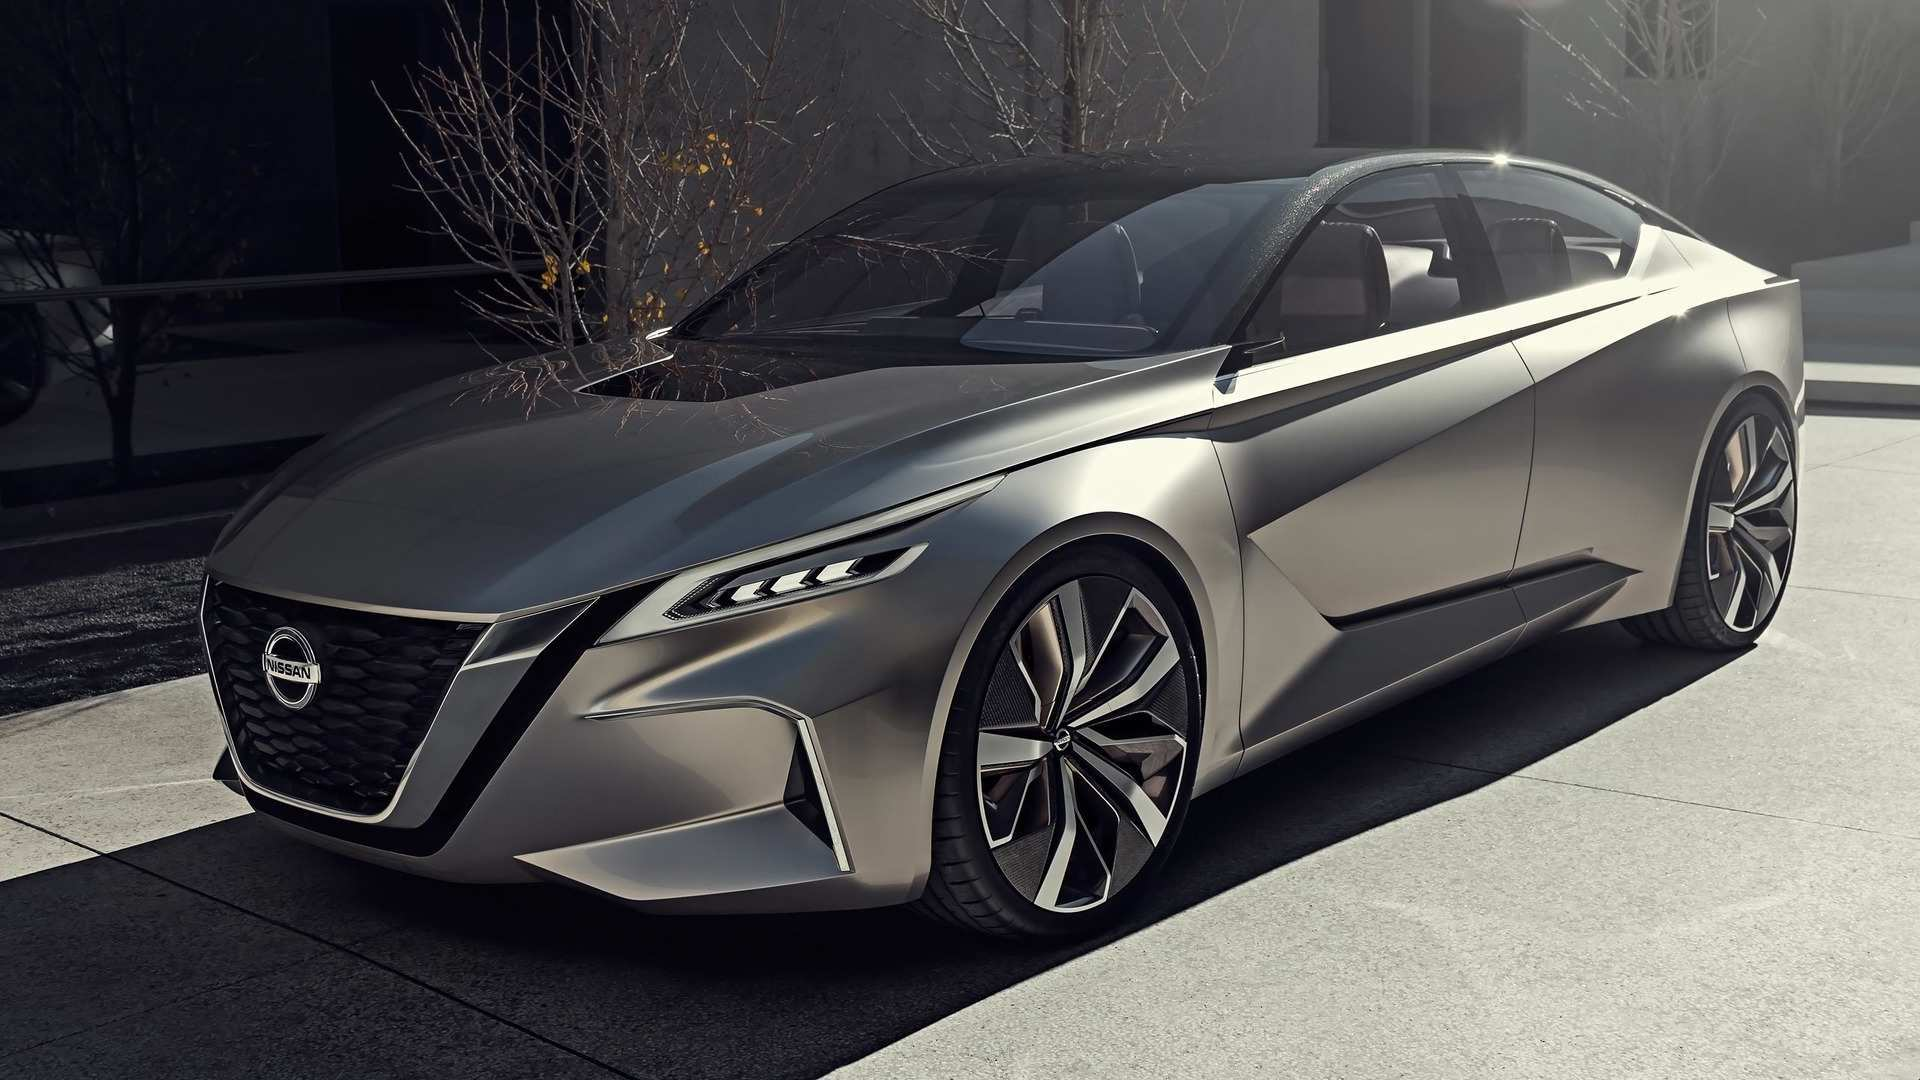 59 Gallery of 2020 Nissan Maxima New Concept Reviews by 2020 Nissan Maxima New Concept